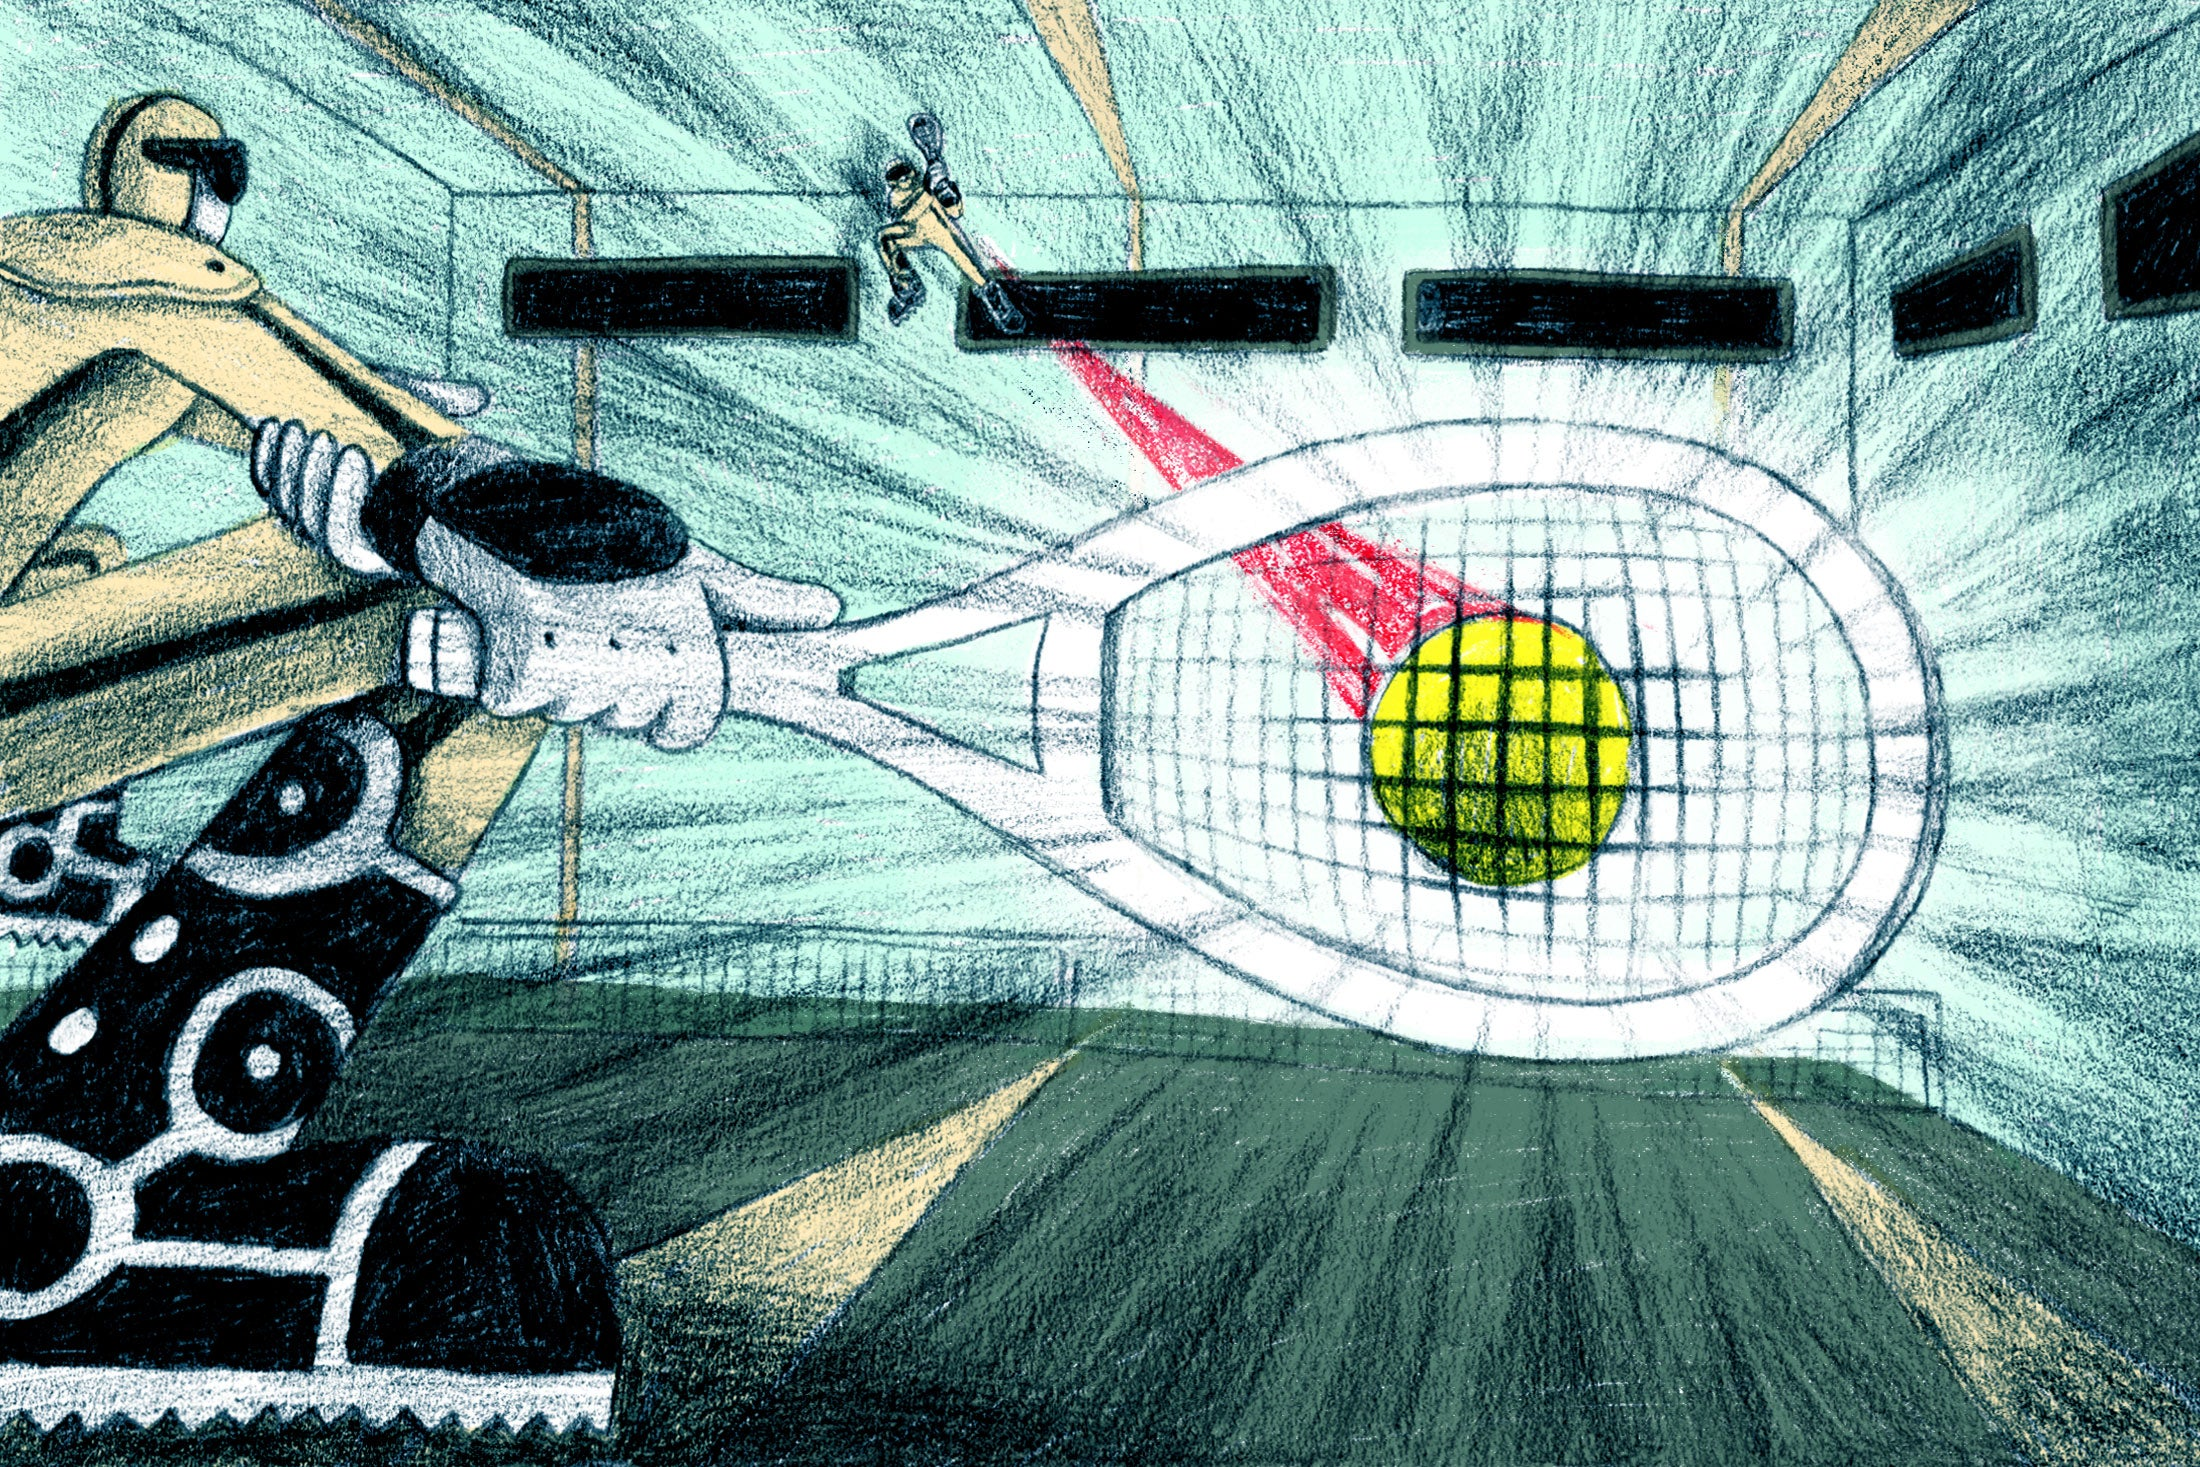 Illustration of a FogoTennis match involving high-velocity swings.